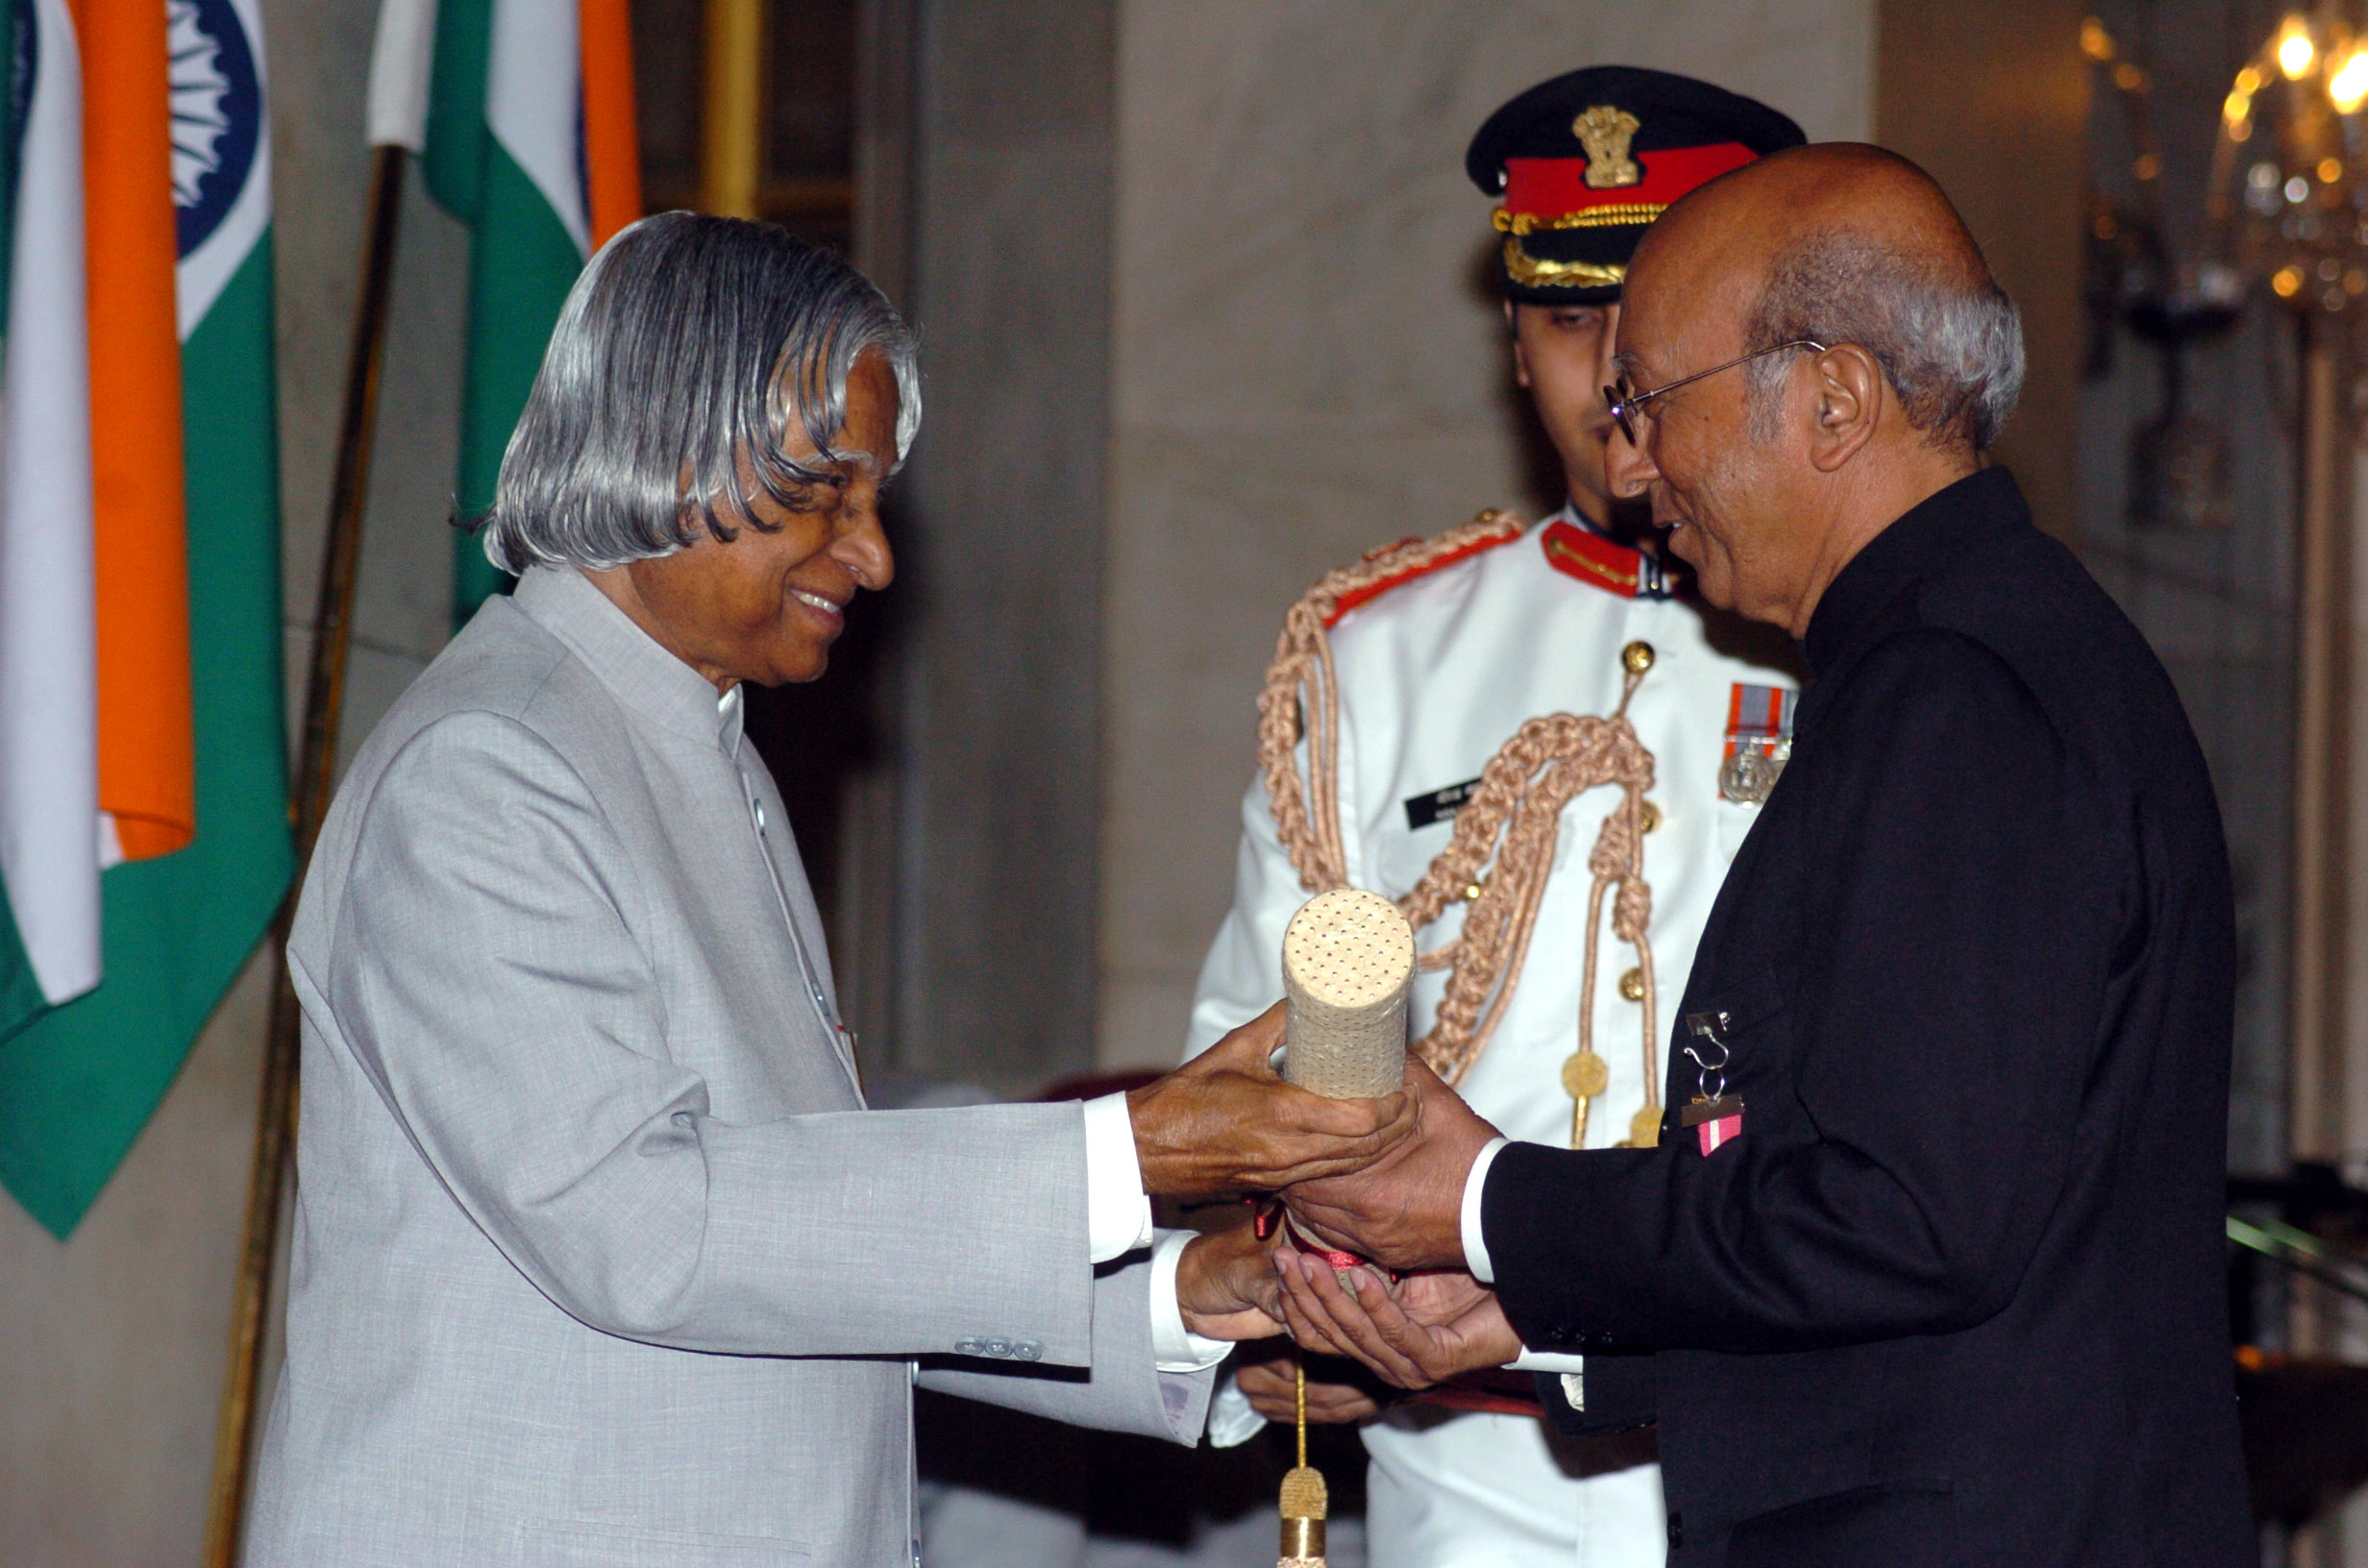 The President, Dr. A.P.J. Abdul Kalam presenting Padma Bhushan to Tarun Das (right), at investiture ceremony in New Delhi on 29 March 2006.